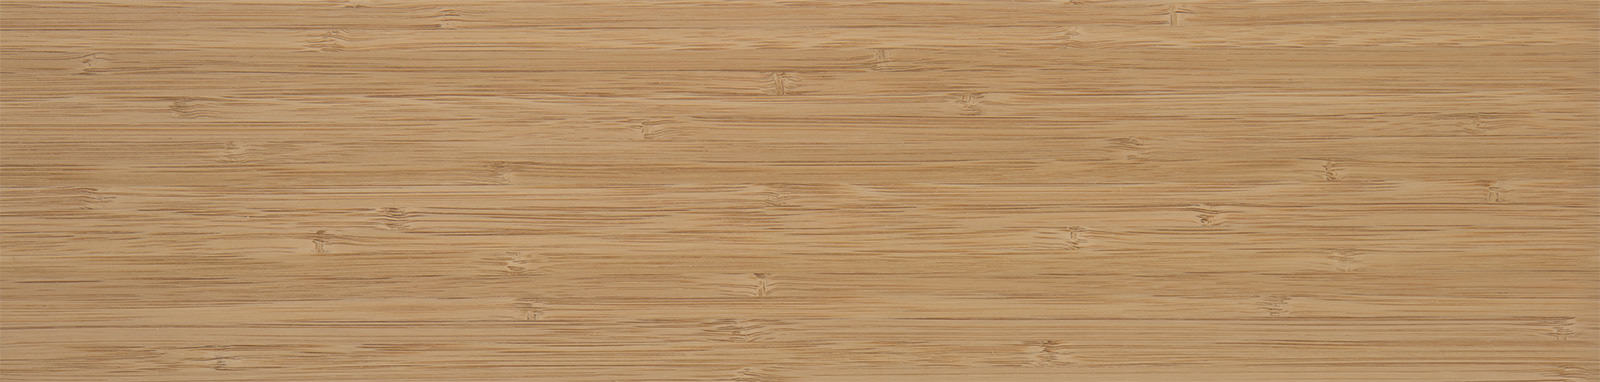 3 4 Inch Plywood Strength ~ Inch carbonized vertical bamboo plywood cali